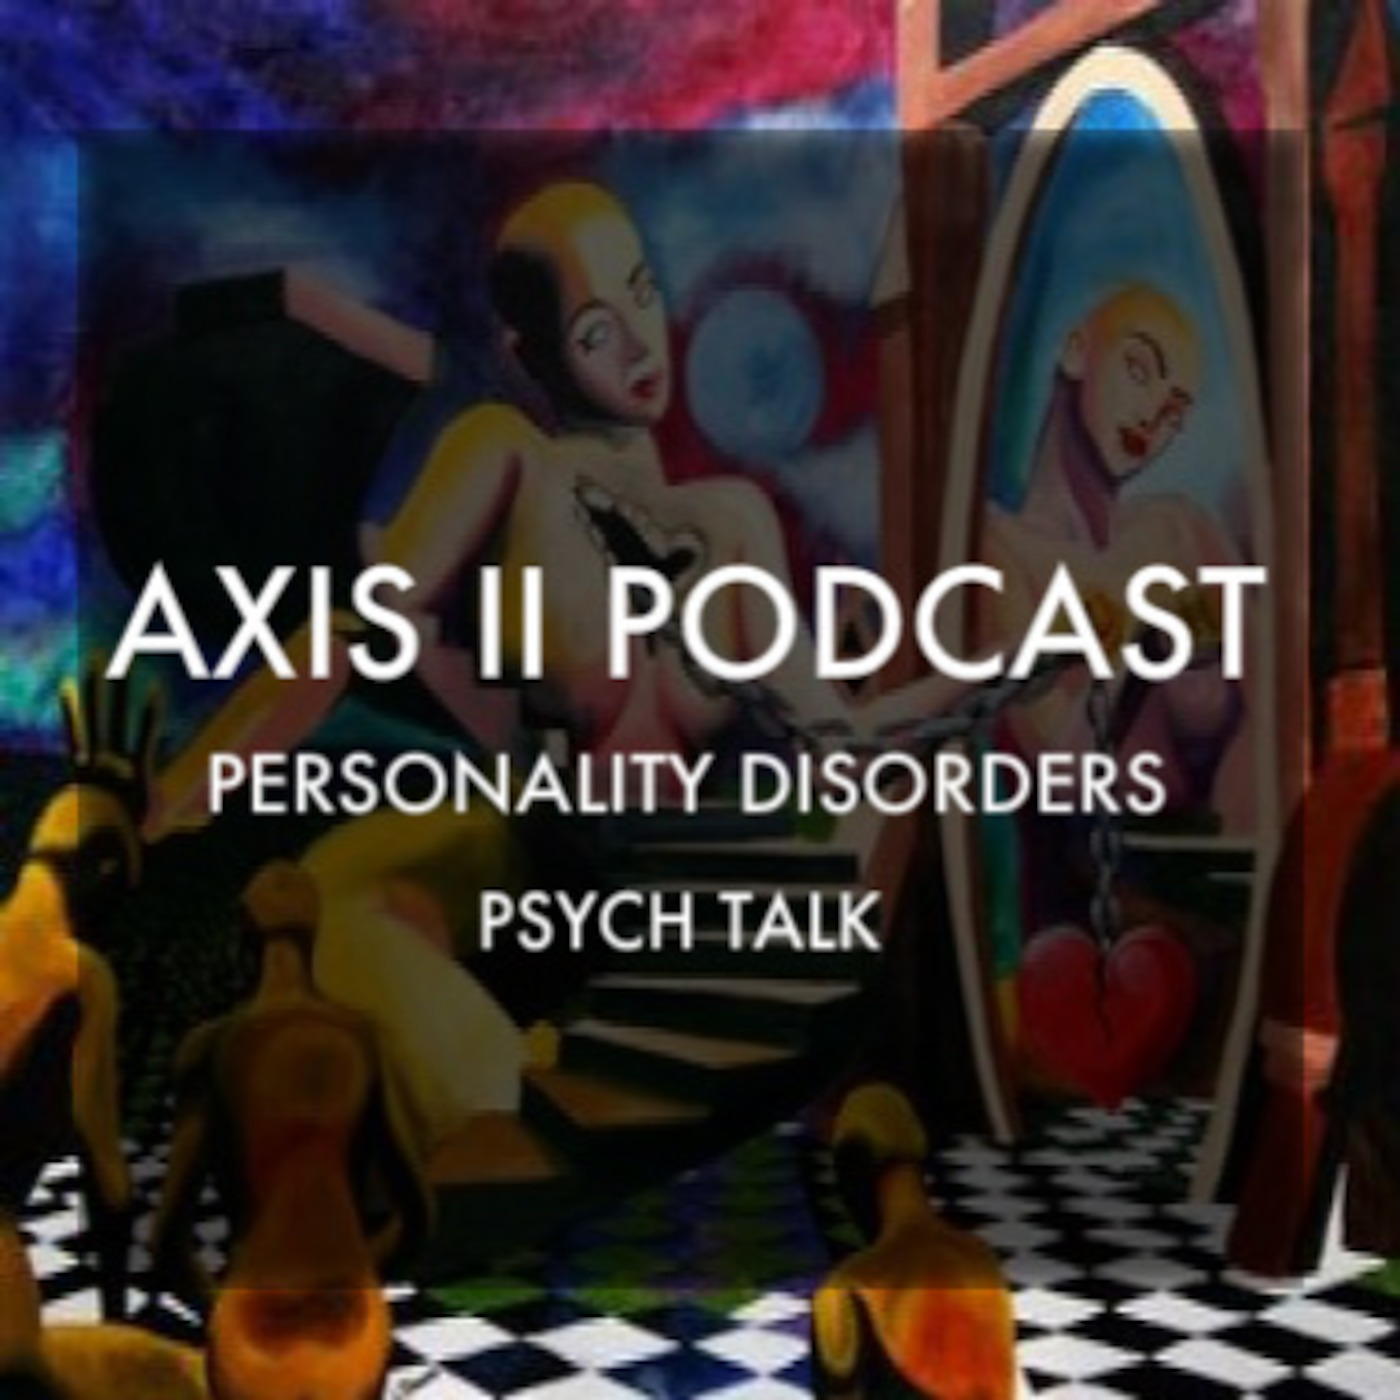 Axis II Podcast: Personality Disorders & Psych Talk